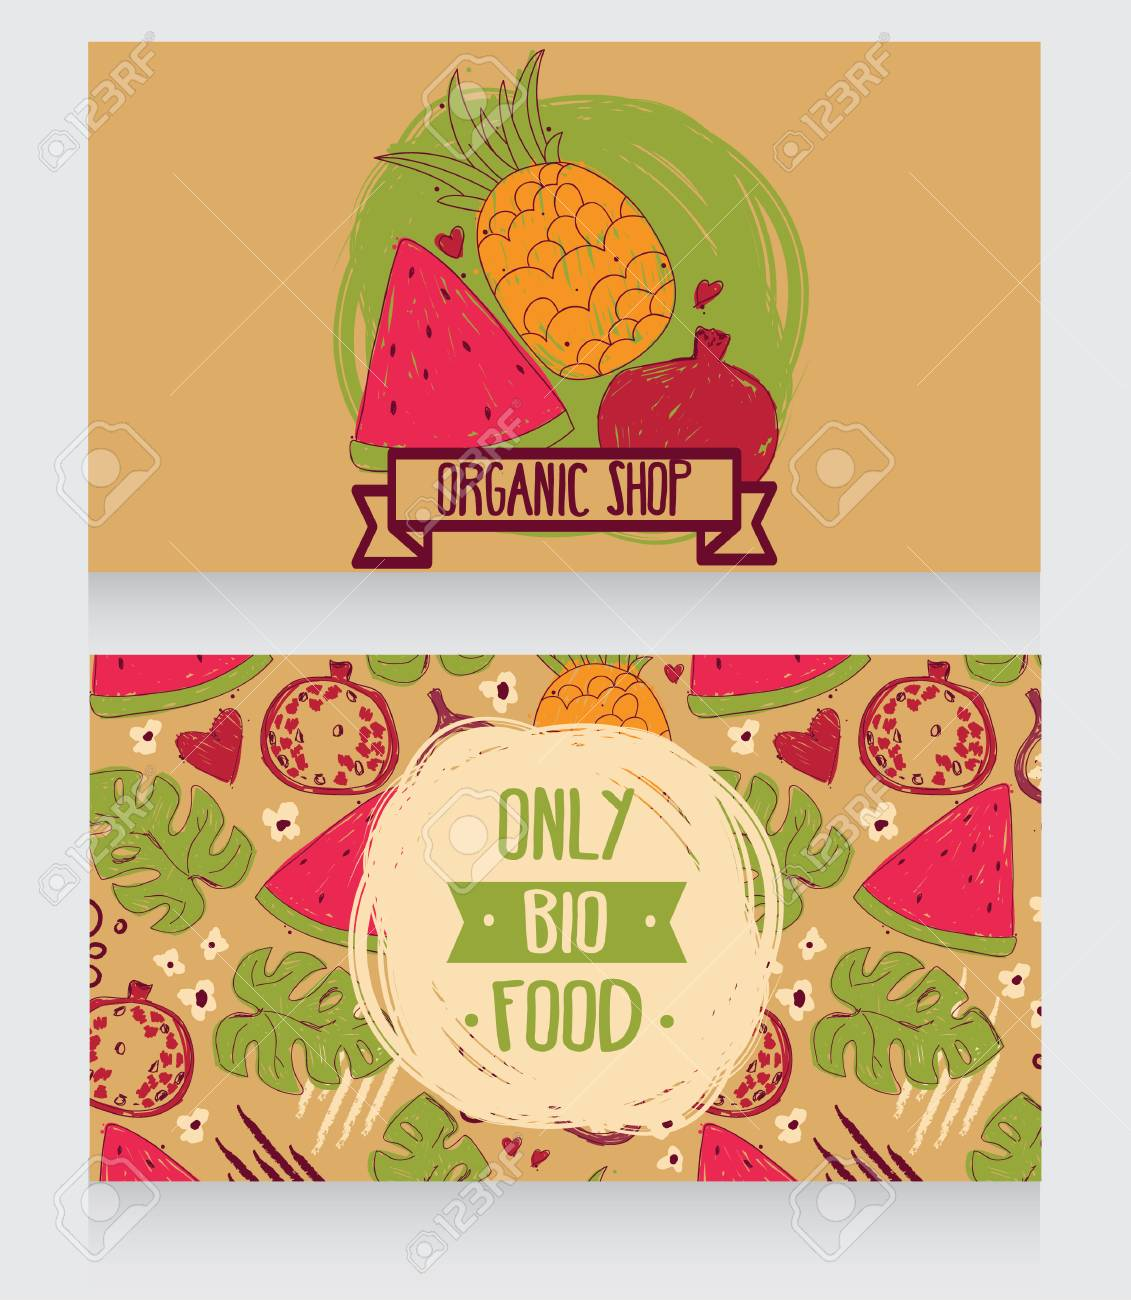 Business cards template for organic foods shop or vegan cafe business cards template for organic foods shop or vegan cafe vector illustration stock vector cheaphphosting Choice Image